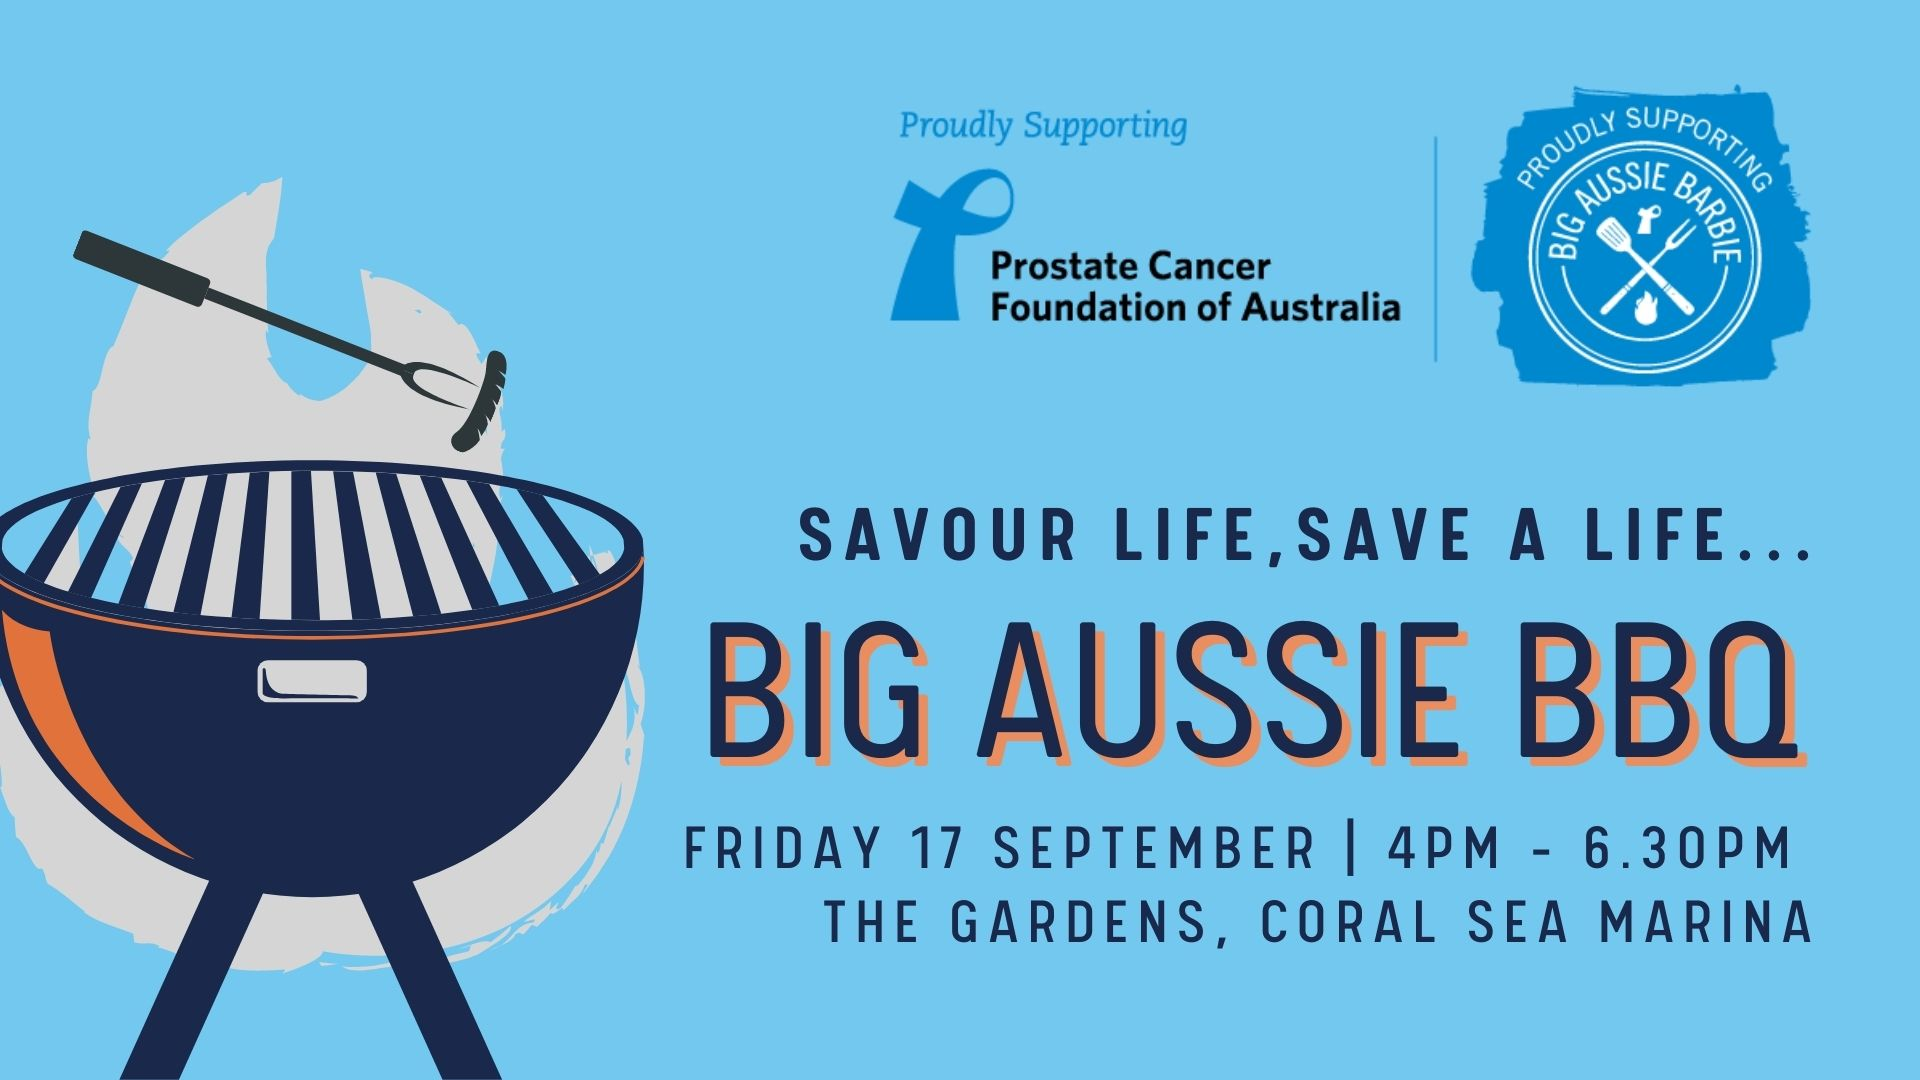 promotional flyer for Big Aussie BBQ event at Coral Sea Marina Resort